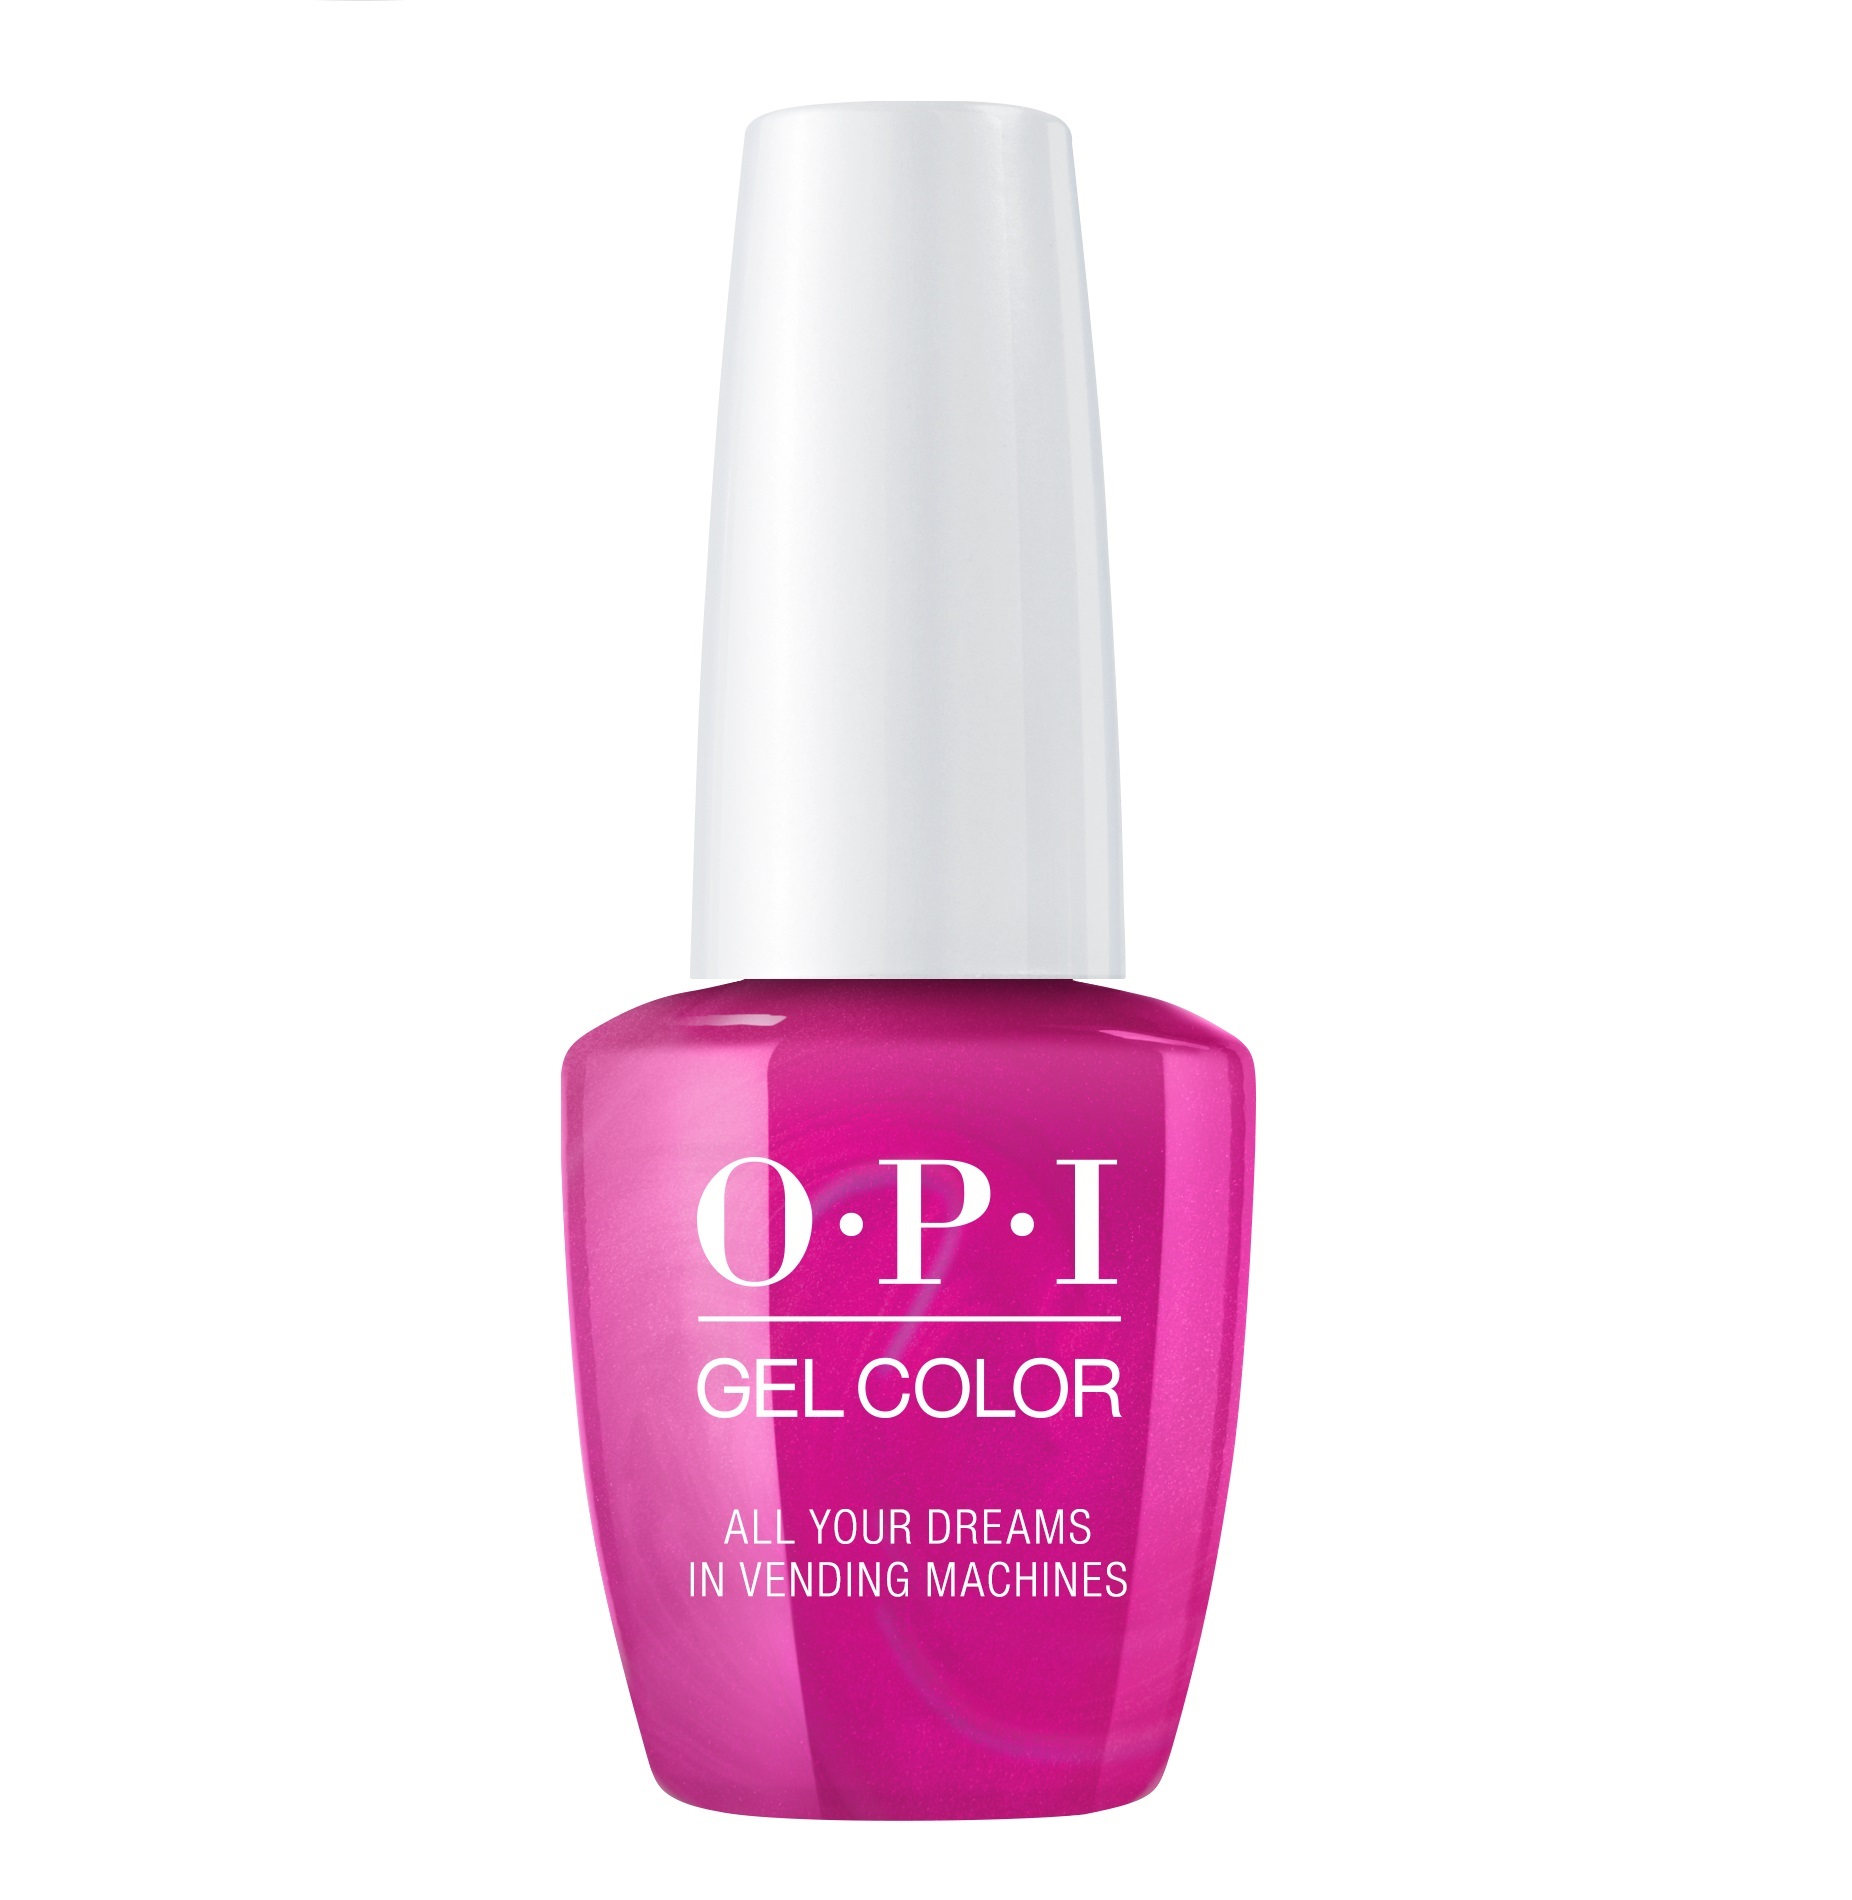 OPI Гель-лак для ногтей / All Your Dreamsin Vending Machines Gel Color 15 мл